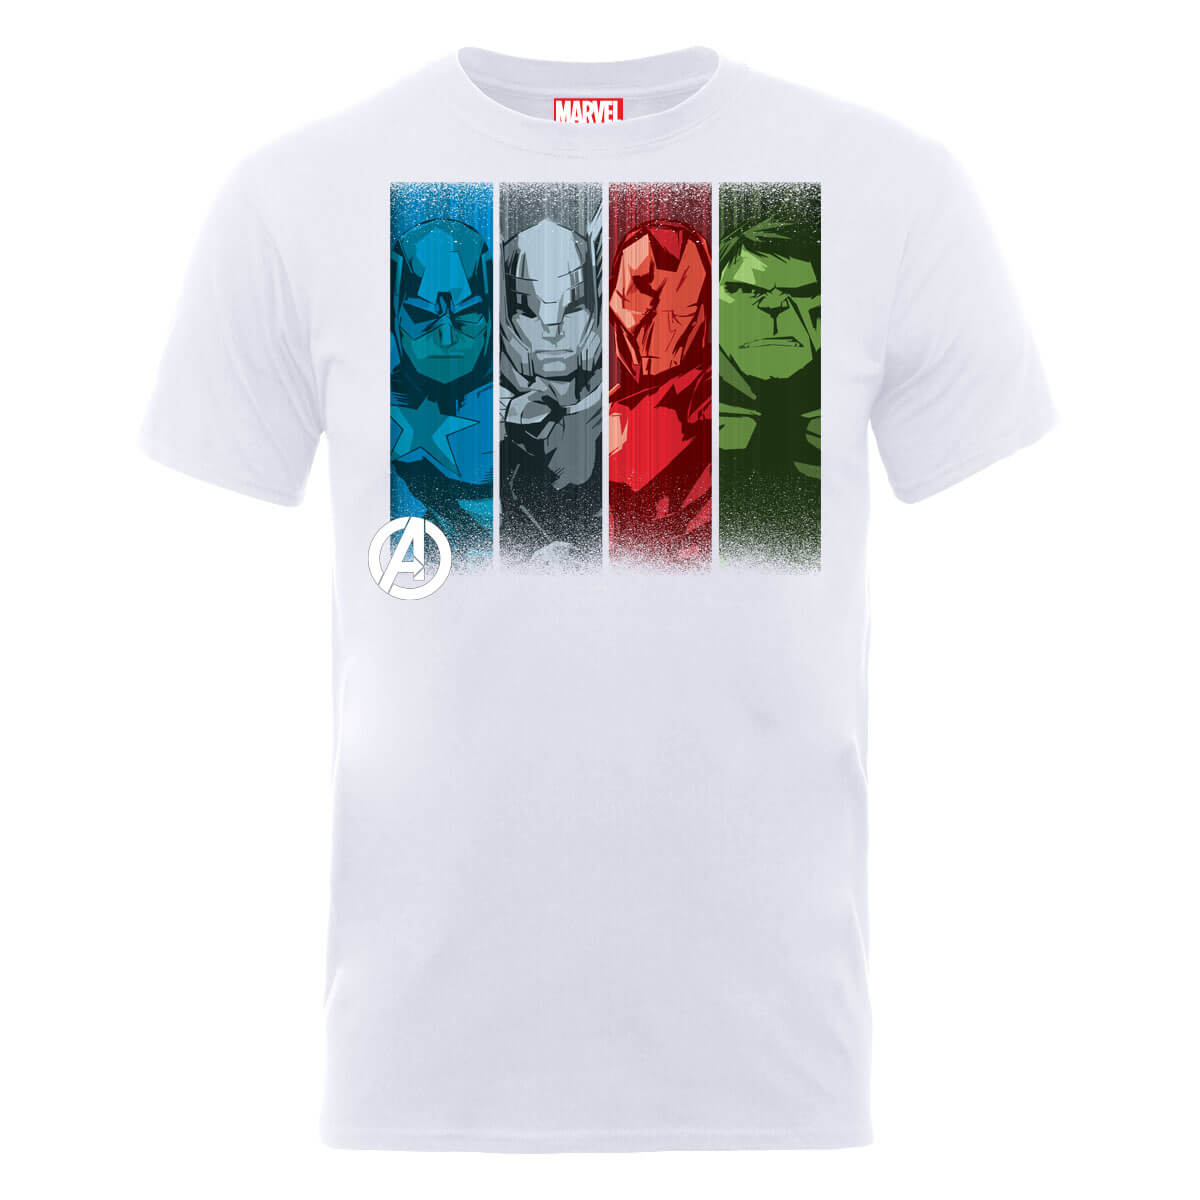 Marvel Avengers Assemble Team Poses T-Shirt - White